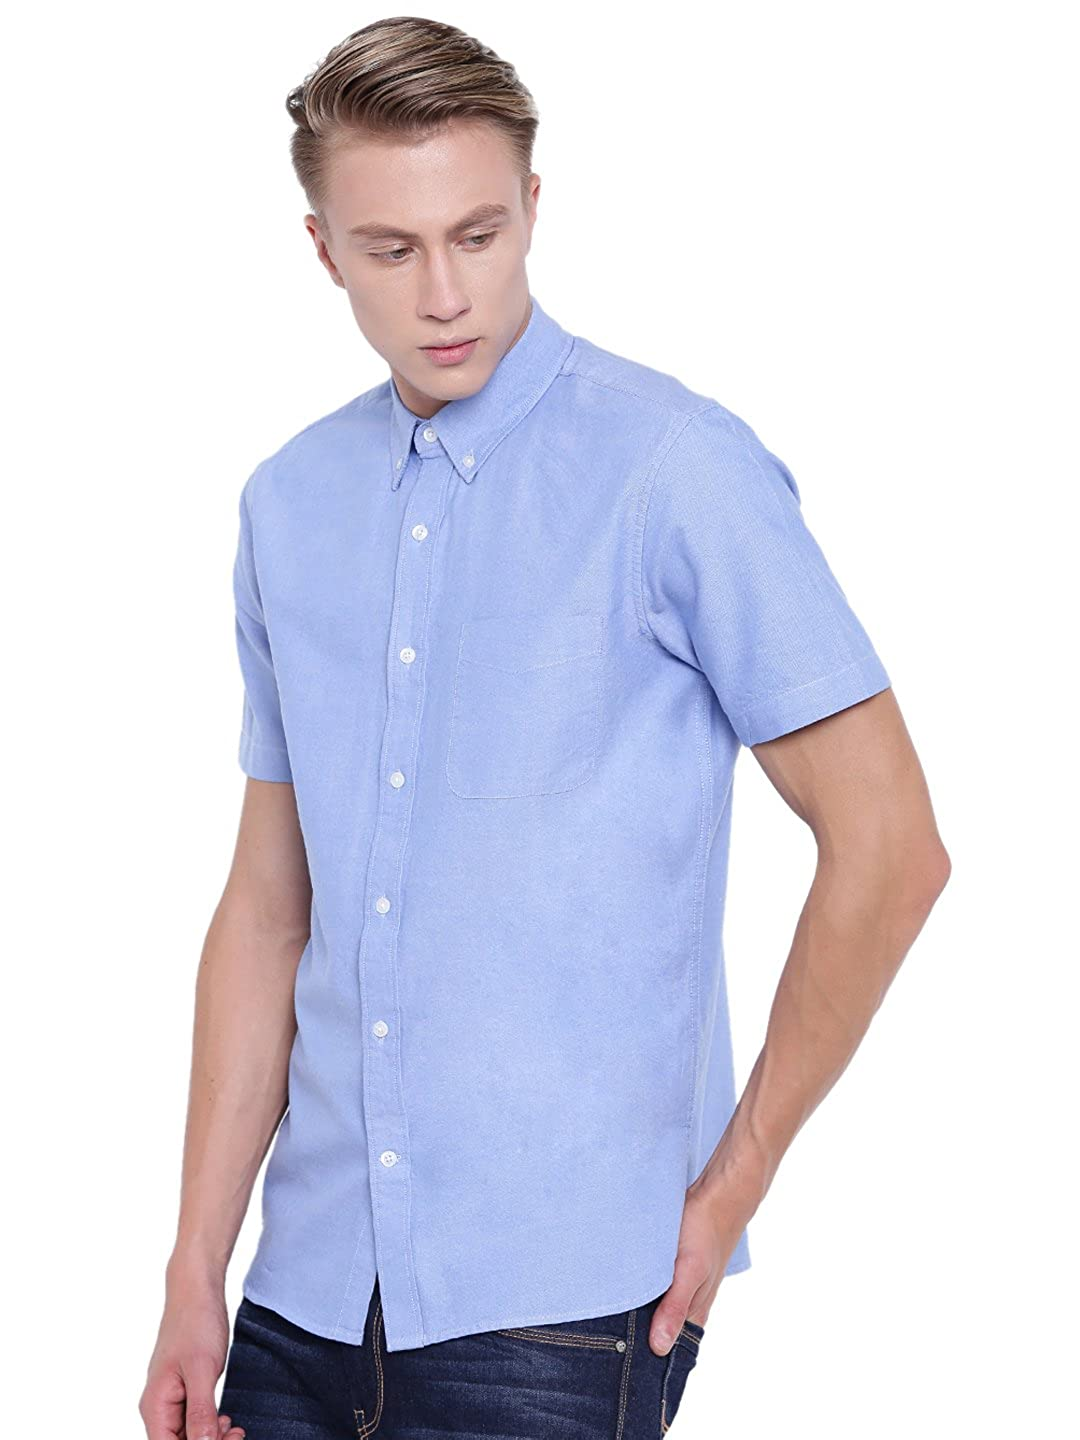 ec87bf2a1242 CottonWorld Men s Blue Short Sleeve Regular FIT Button Down Oxford Shirt   Amazon.in  Clothing   Accessories